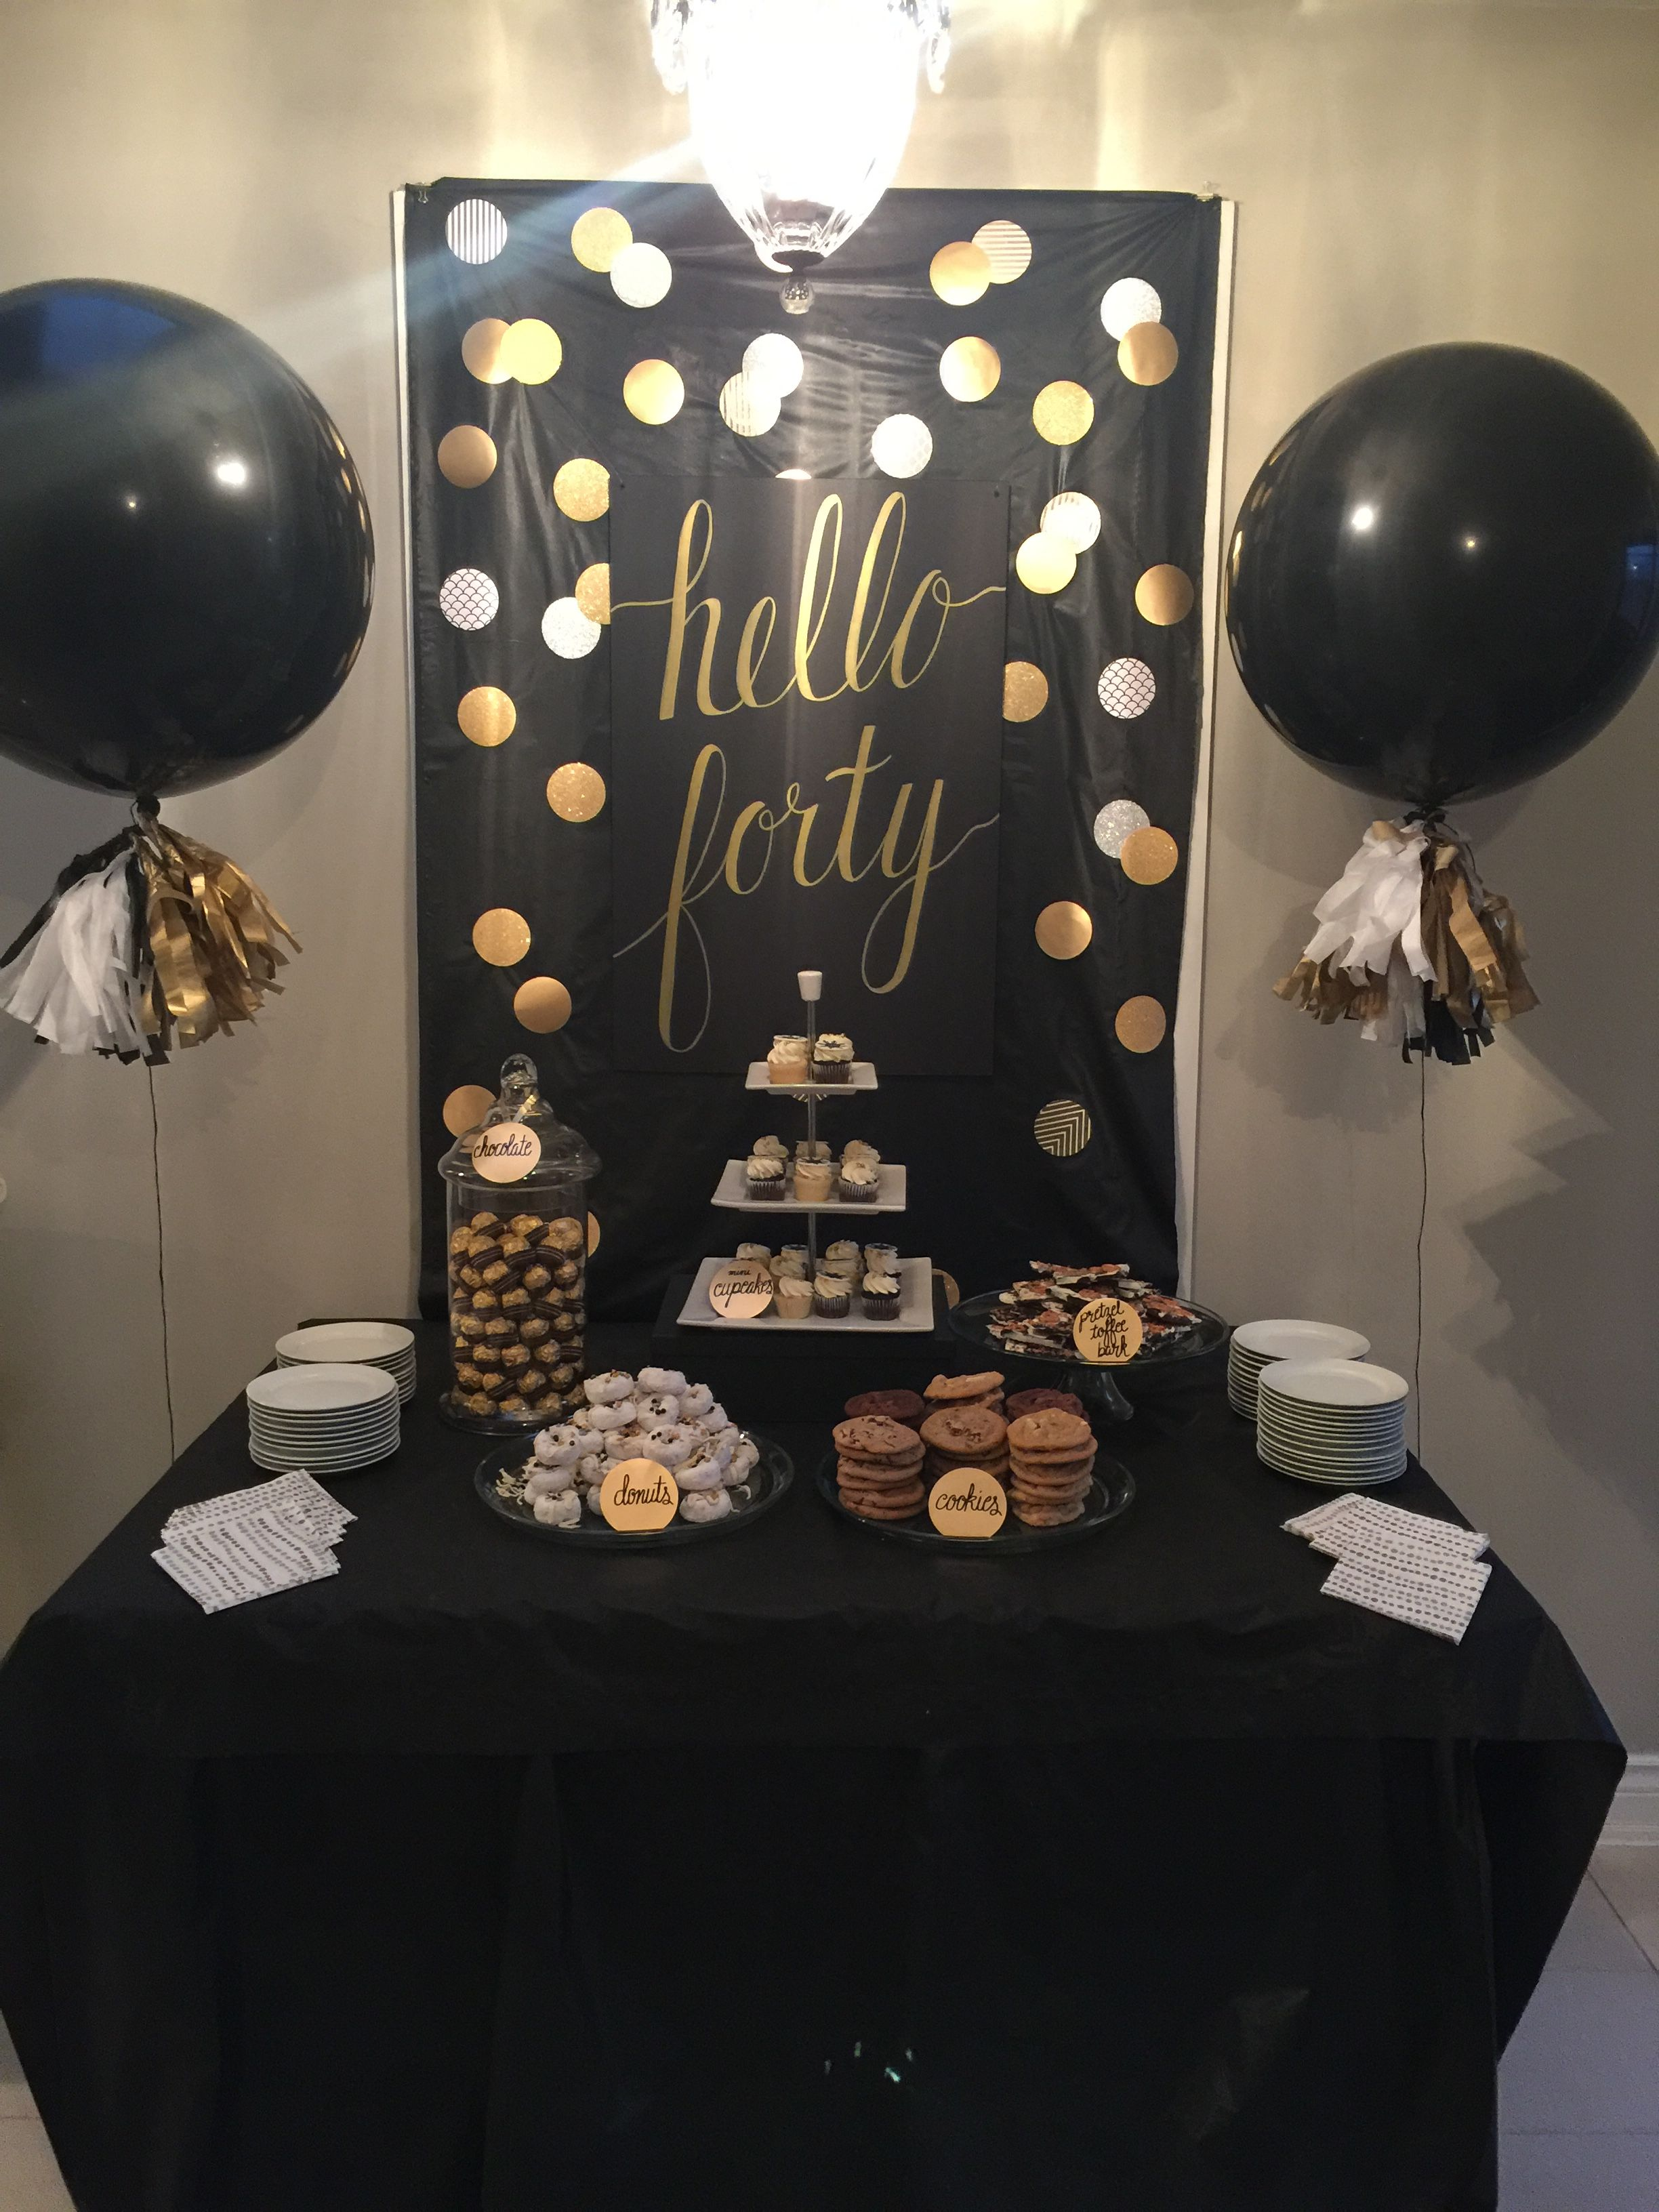 Black And Gold Sweet Table 40th Birthday Party Decorations Surprise 50th Birthday Party Gold Birthday Party